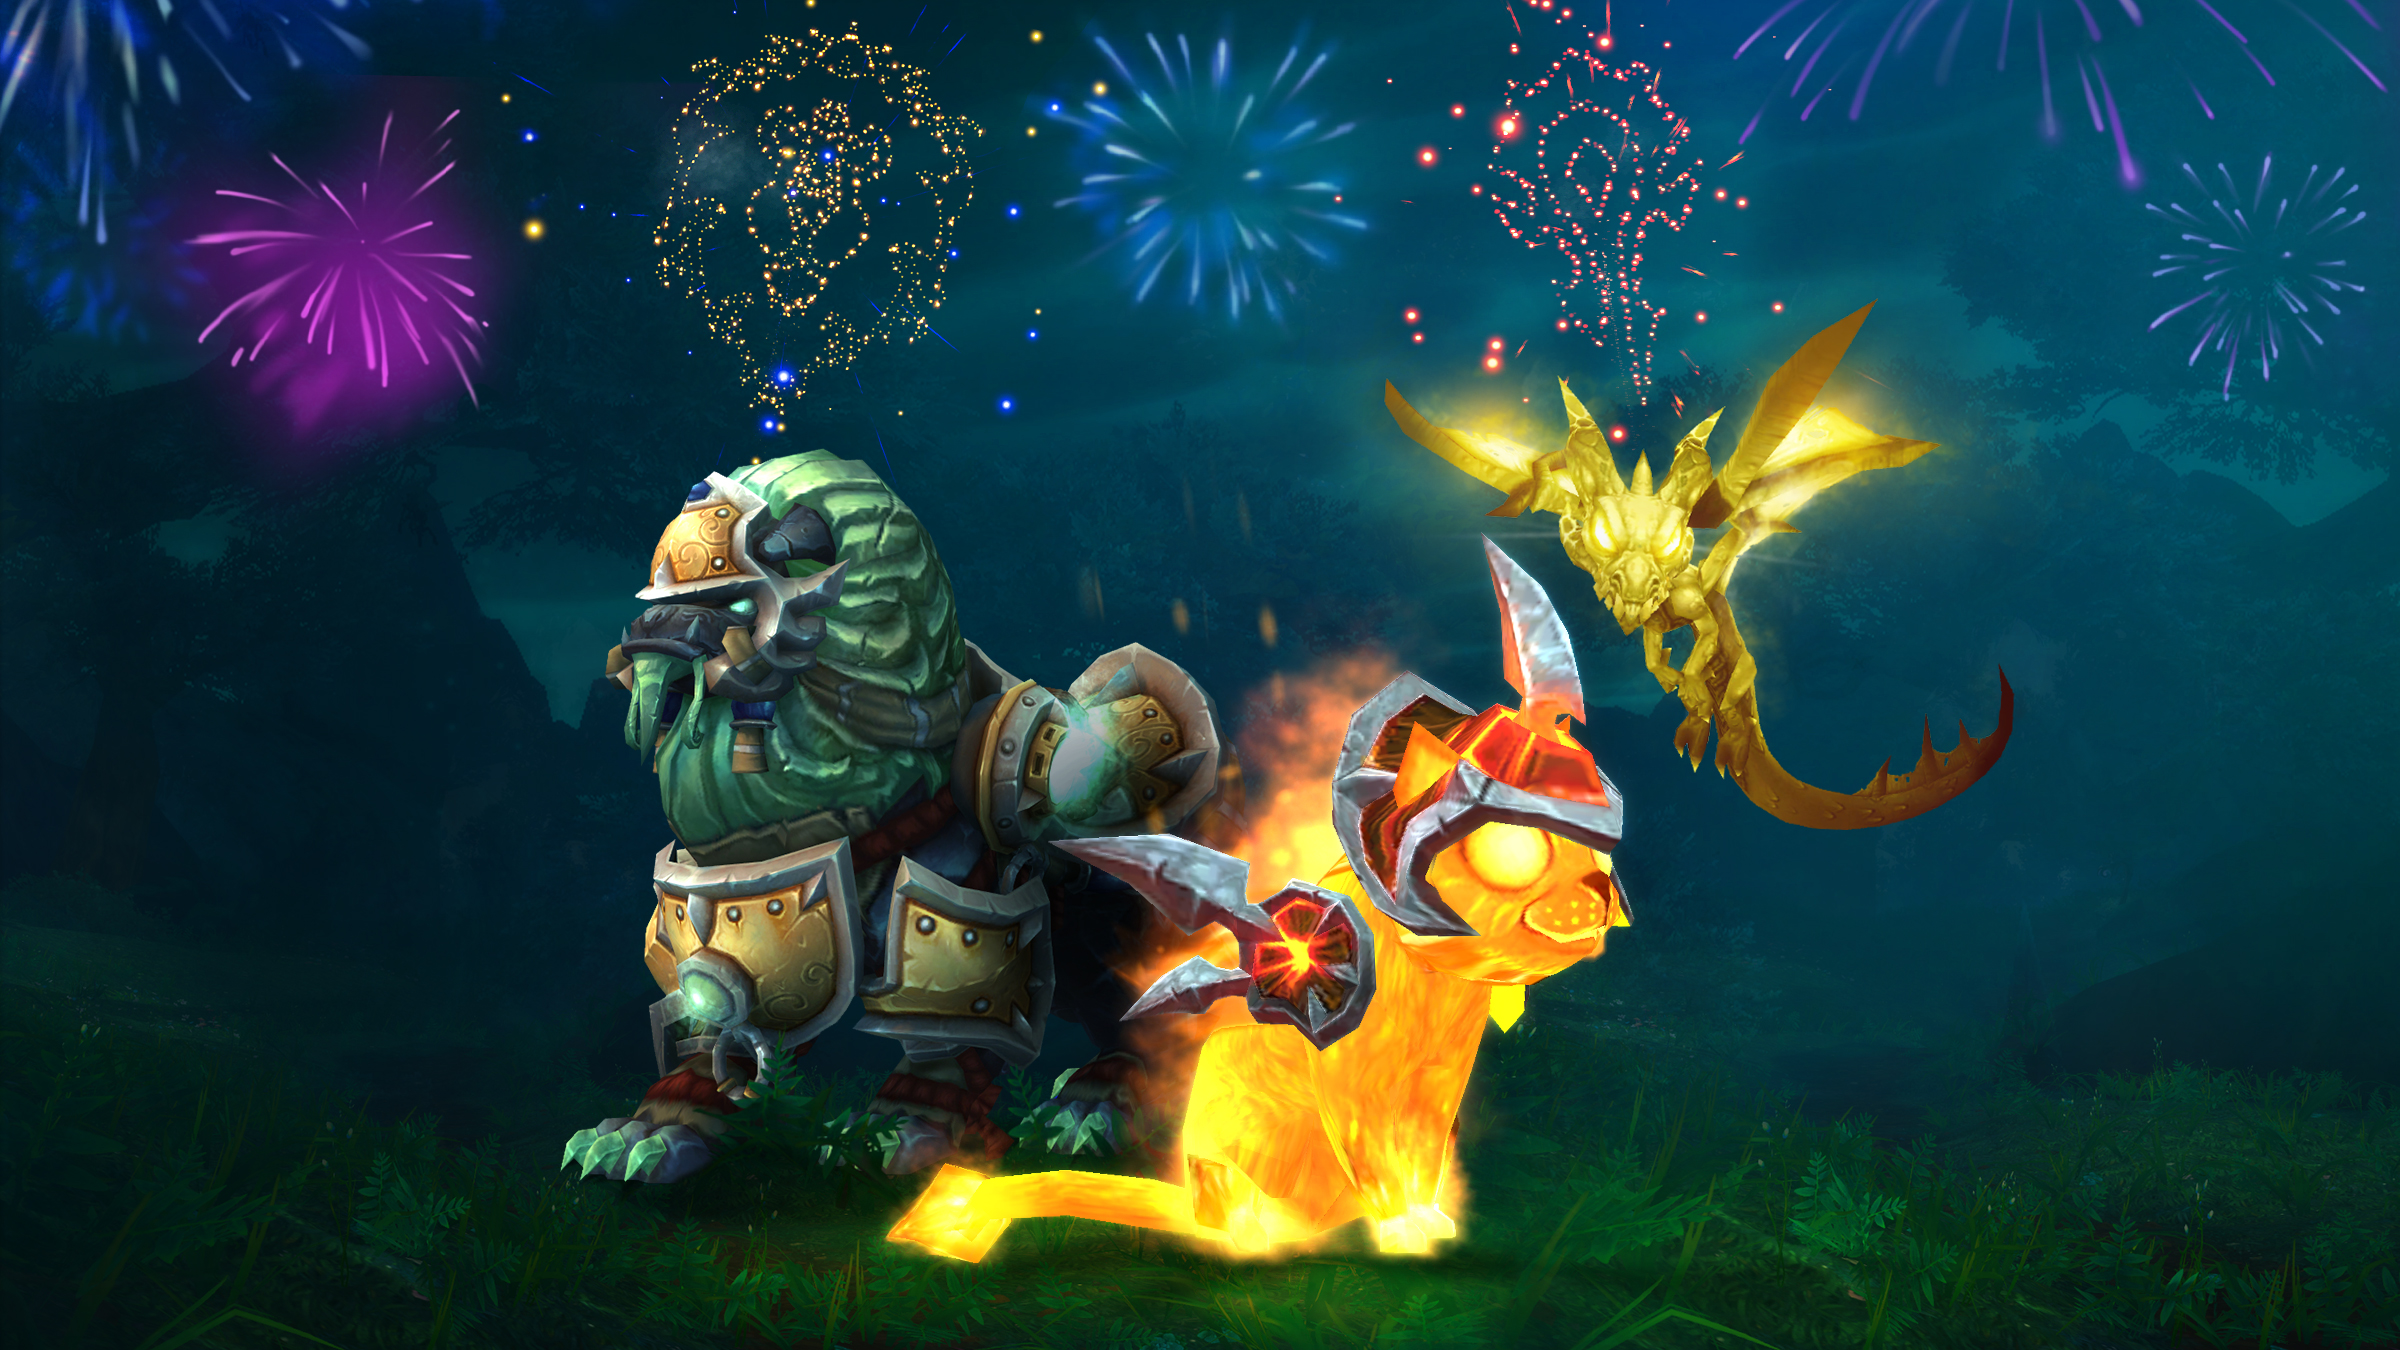 Save 50% on Select Pets, Mounts, and More During Our Summer Sale!